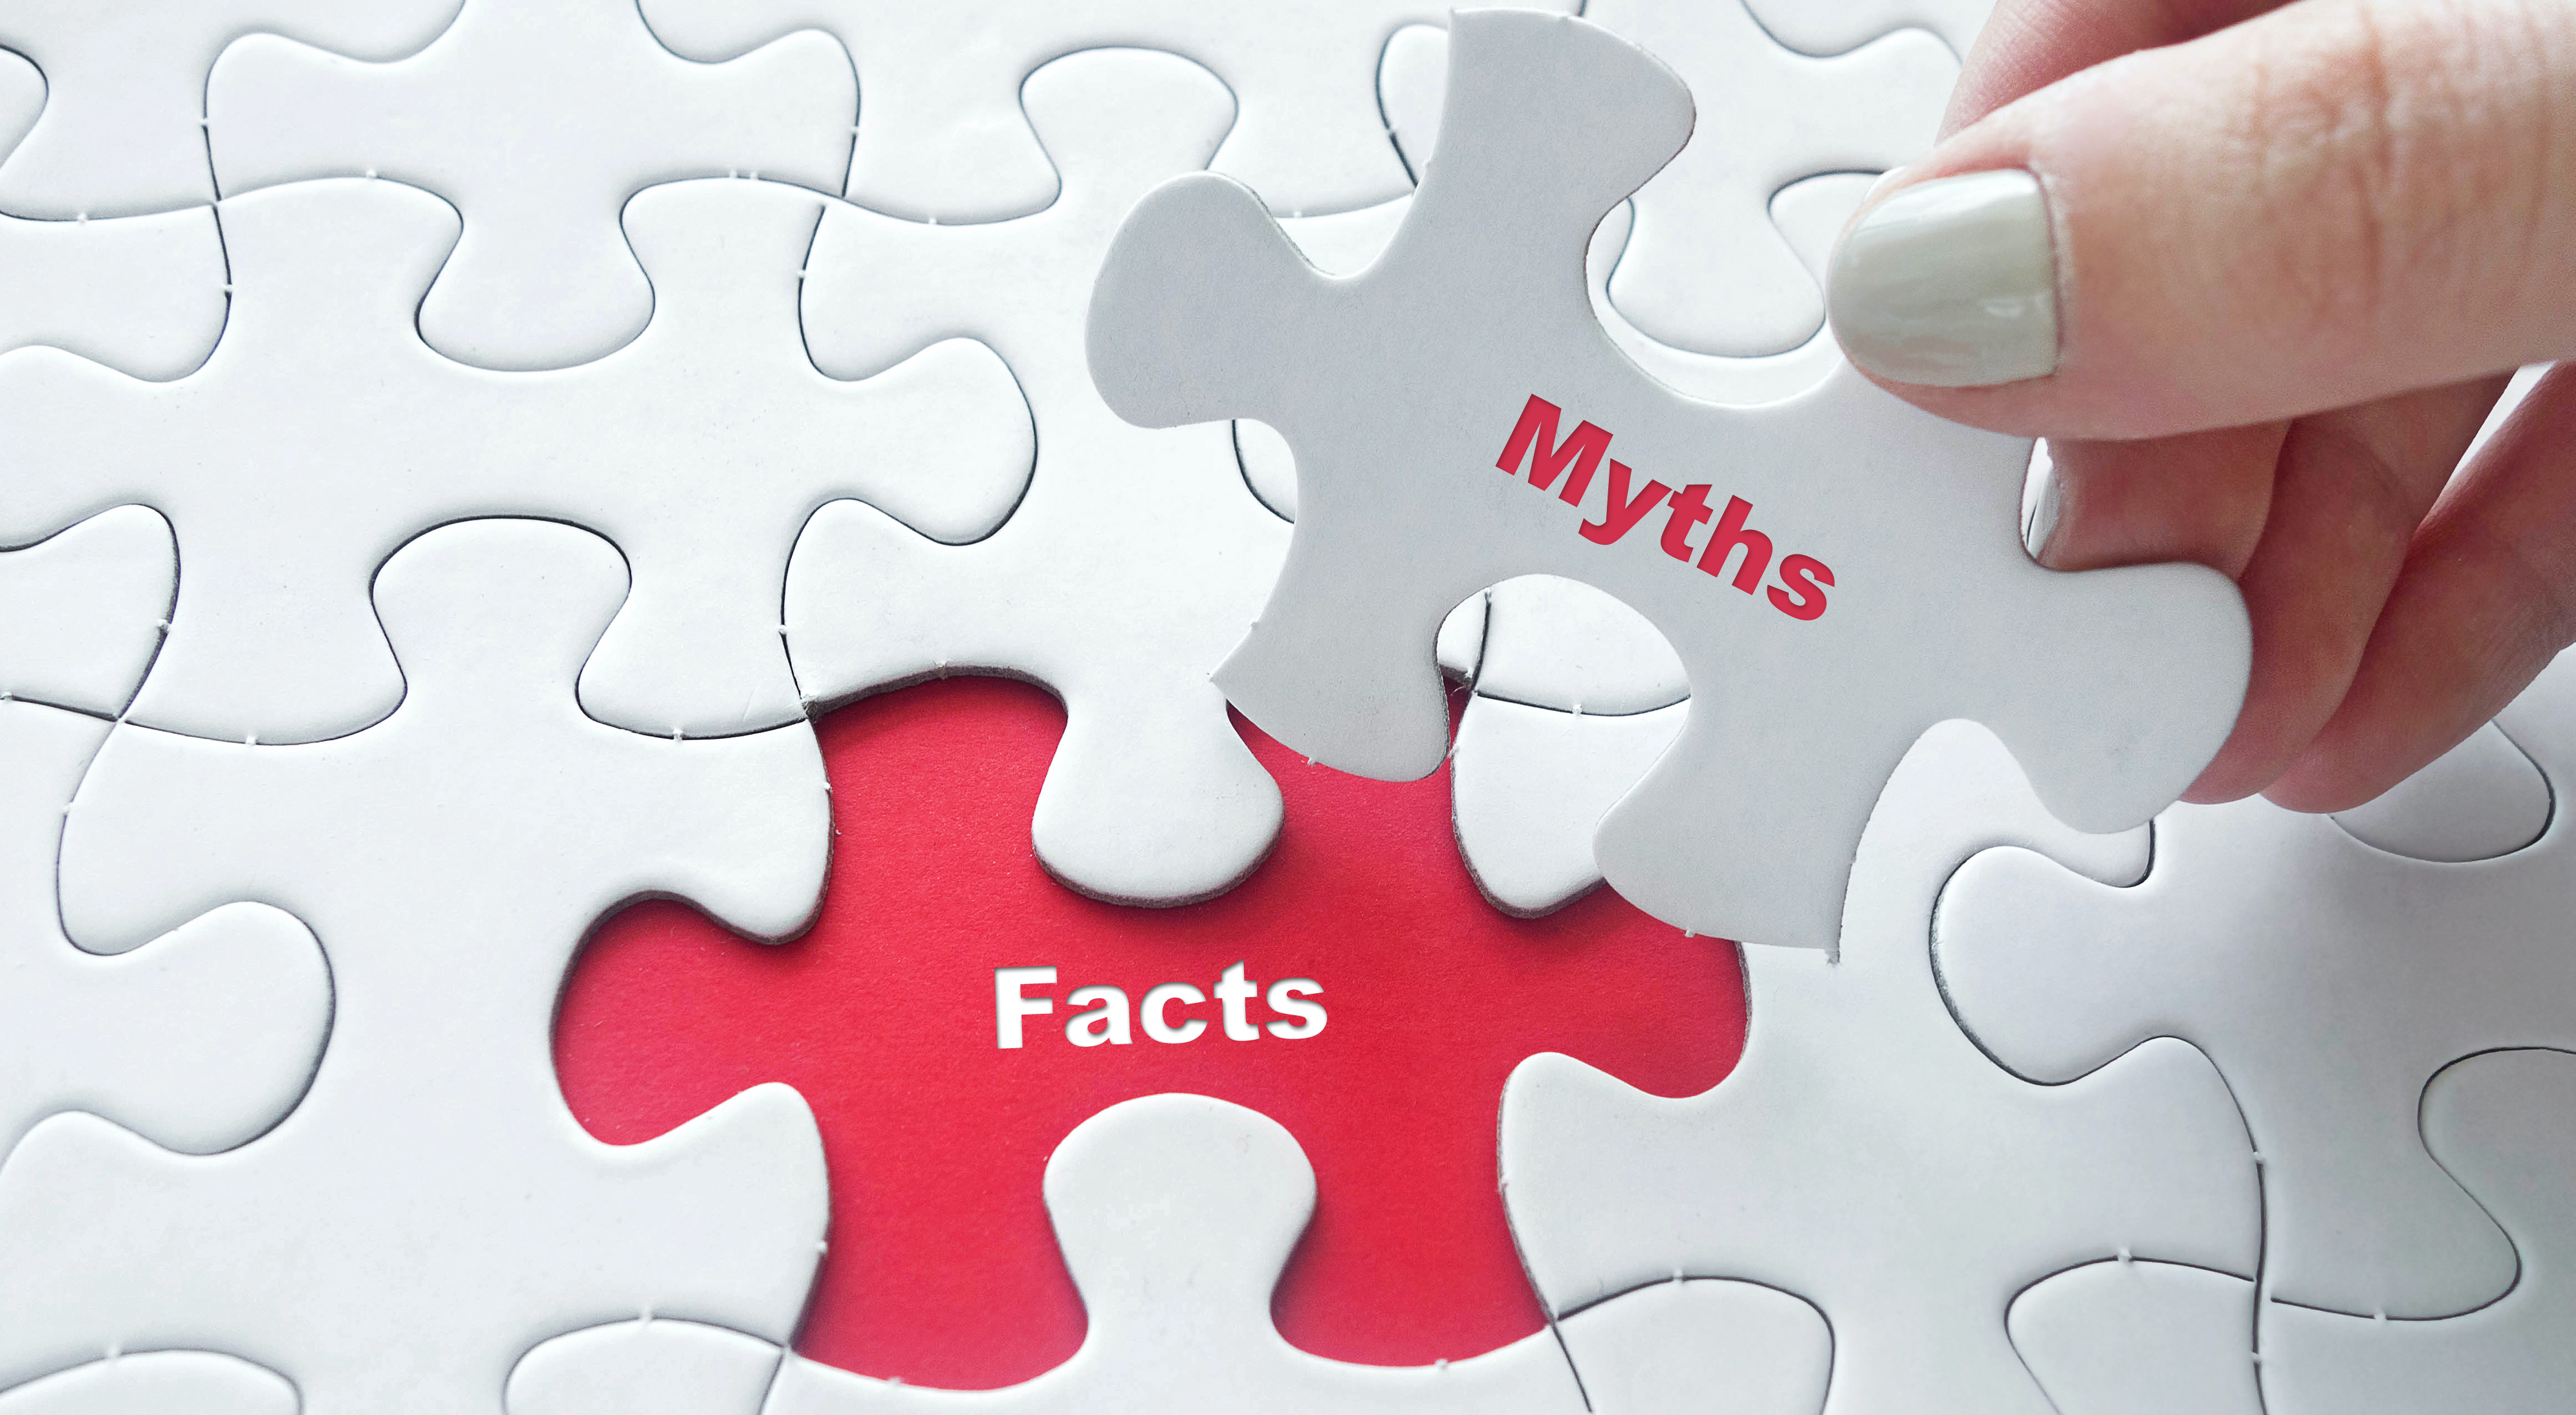 Myths and facts pieces of a puzzle